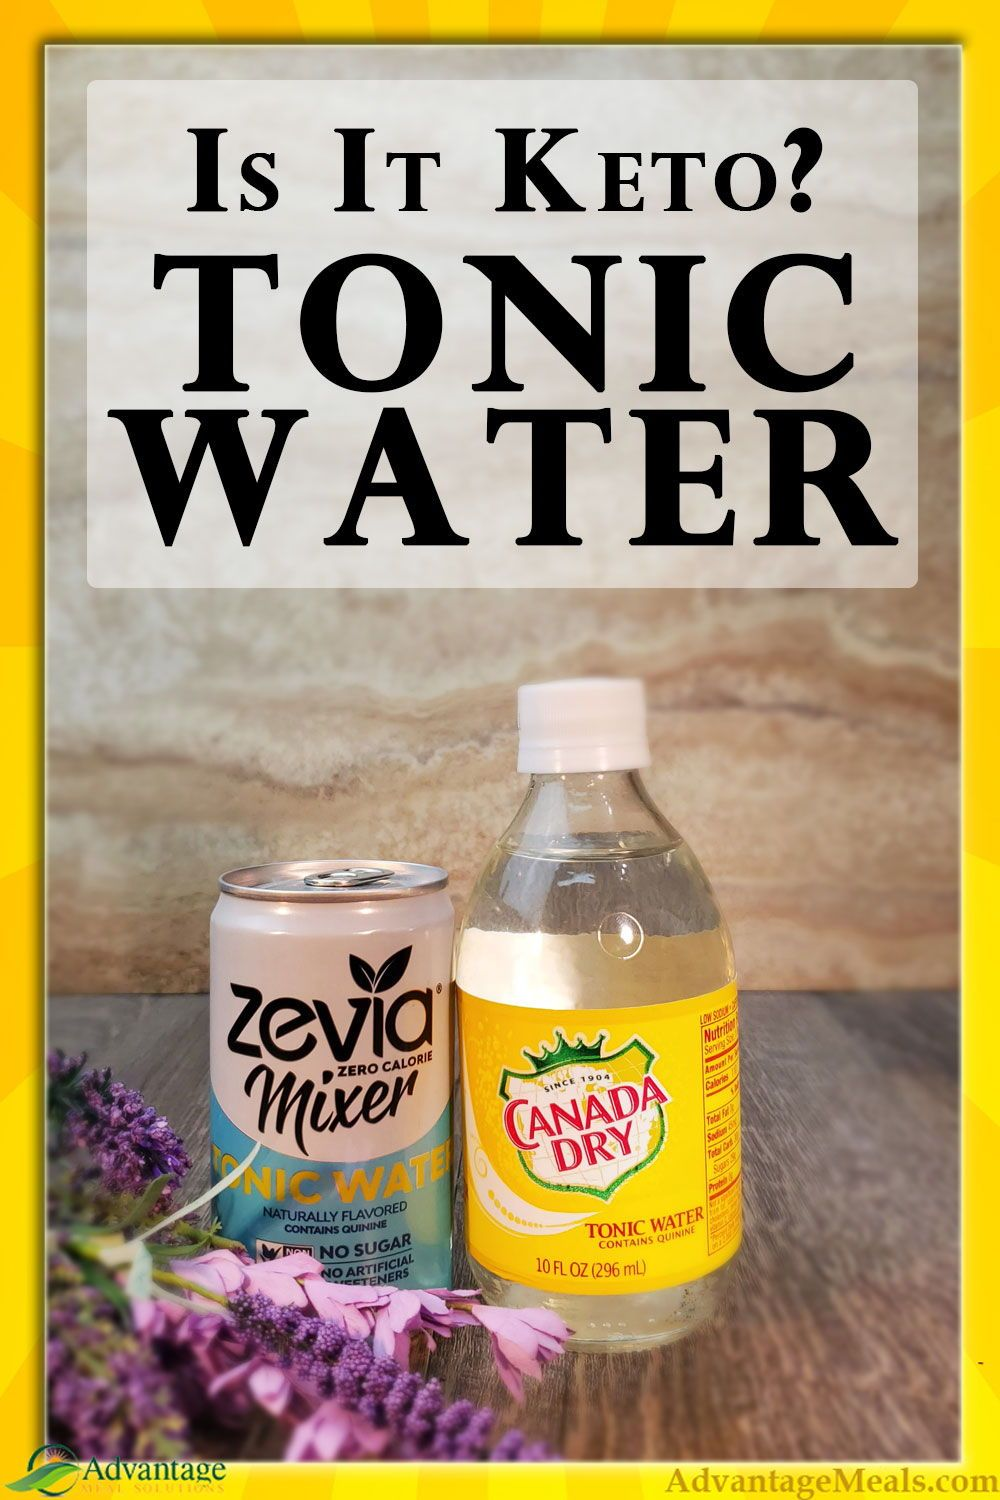 Is It Keto Low Carb Cocktails Tonic Water Diet Tonic Water